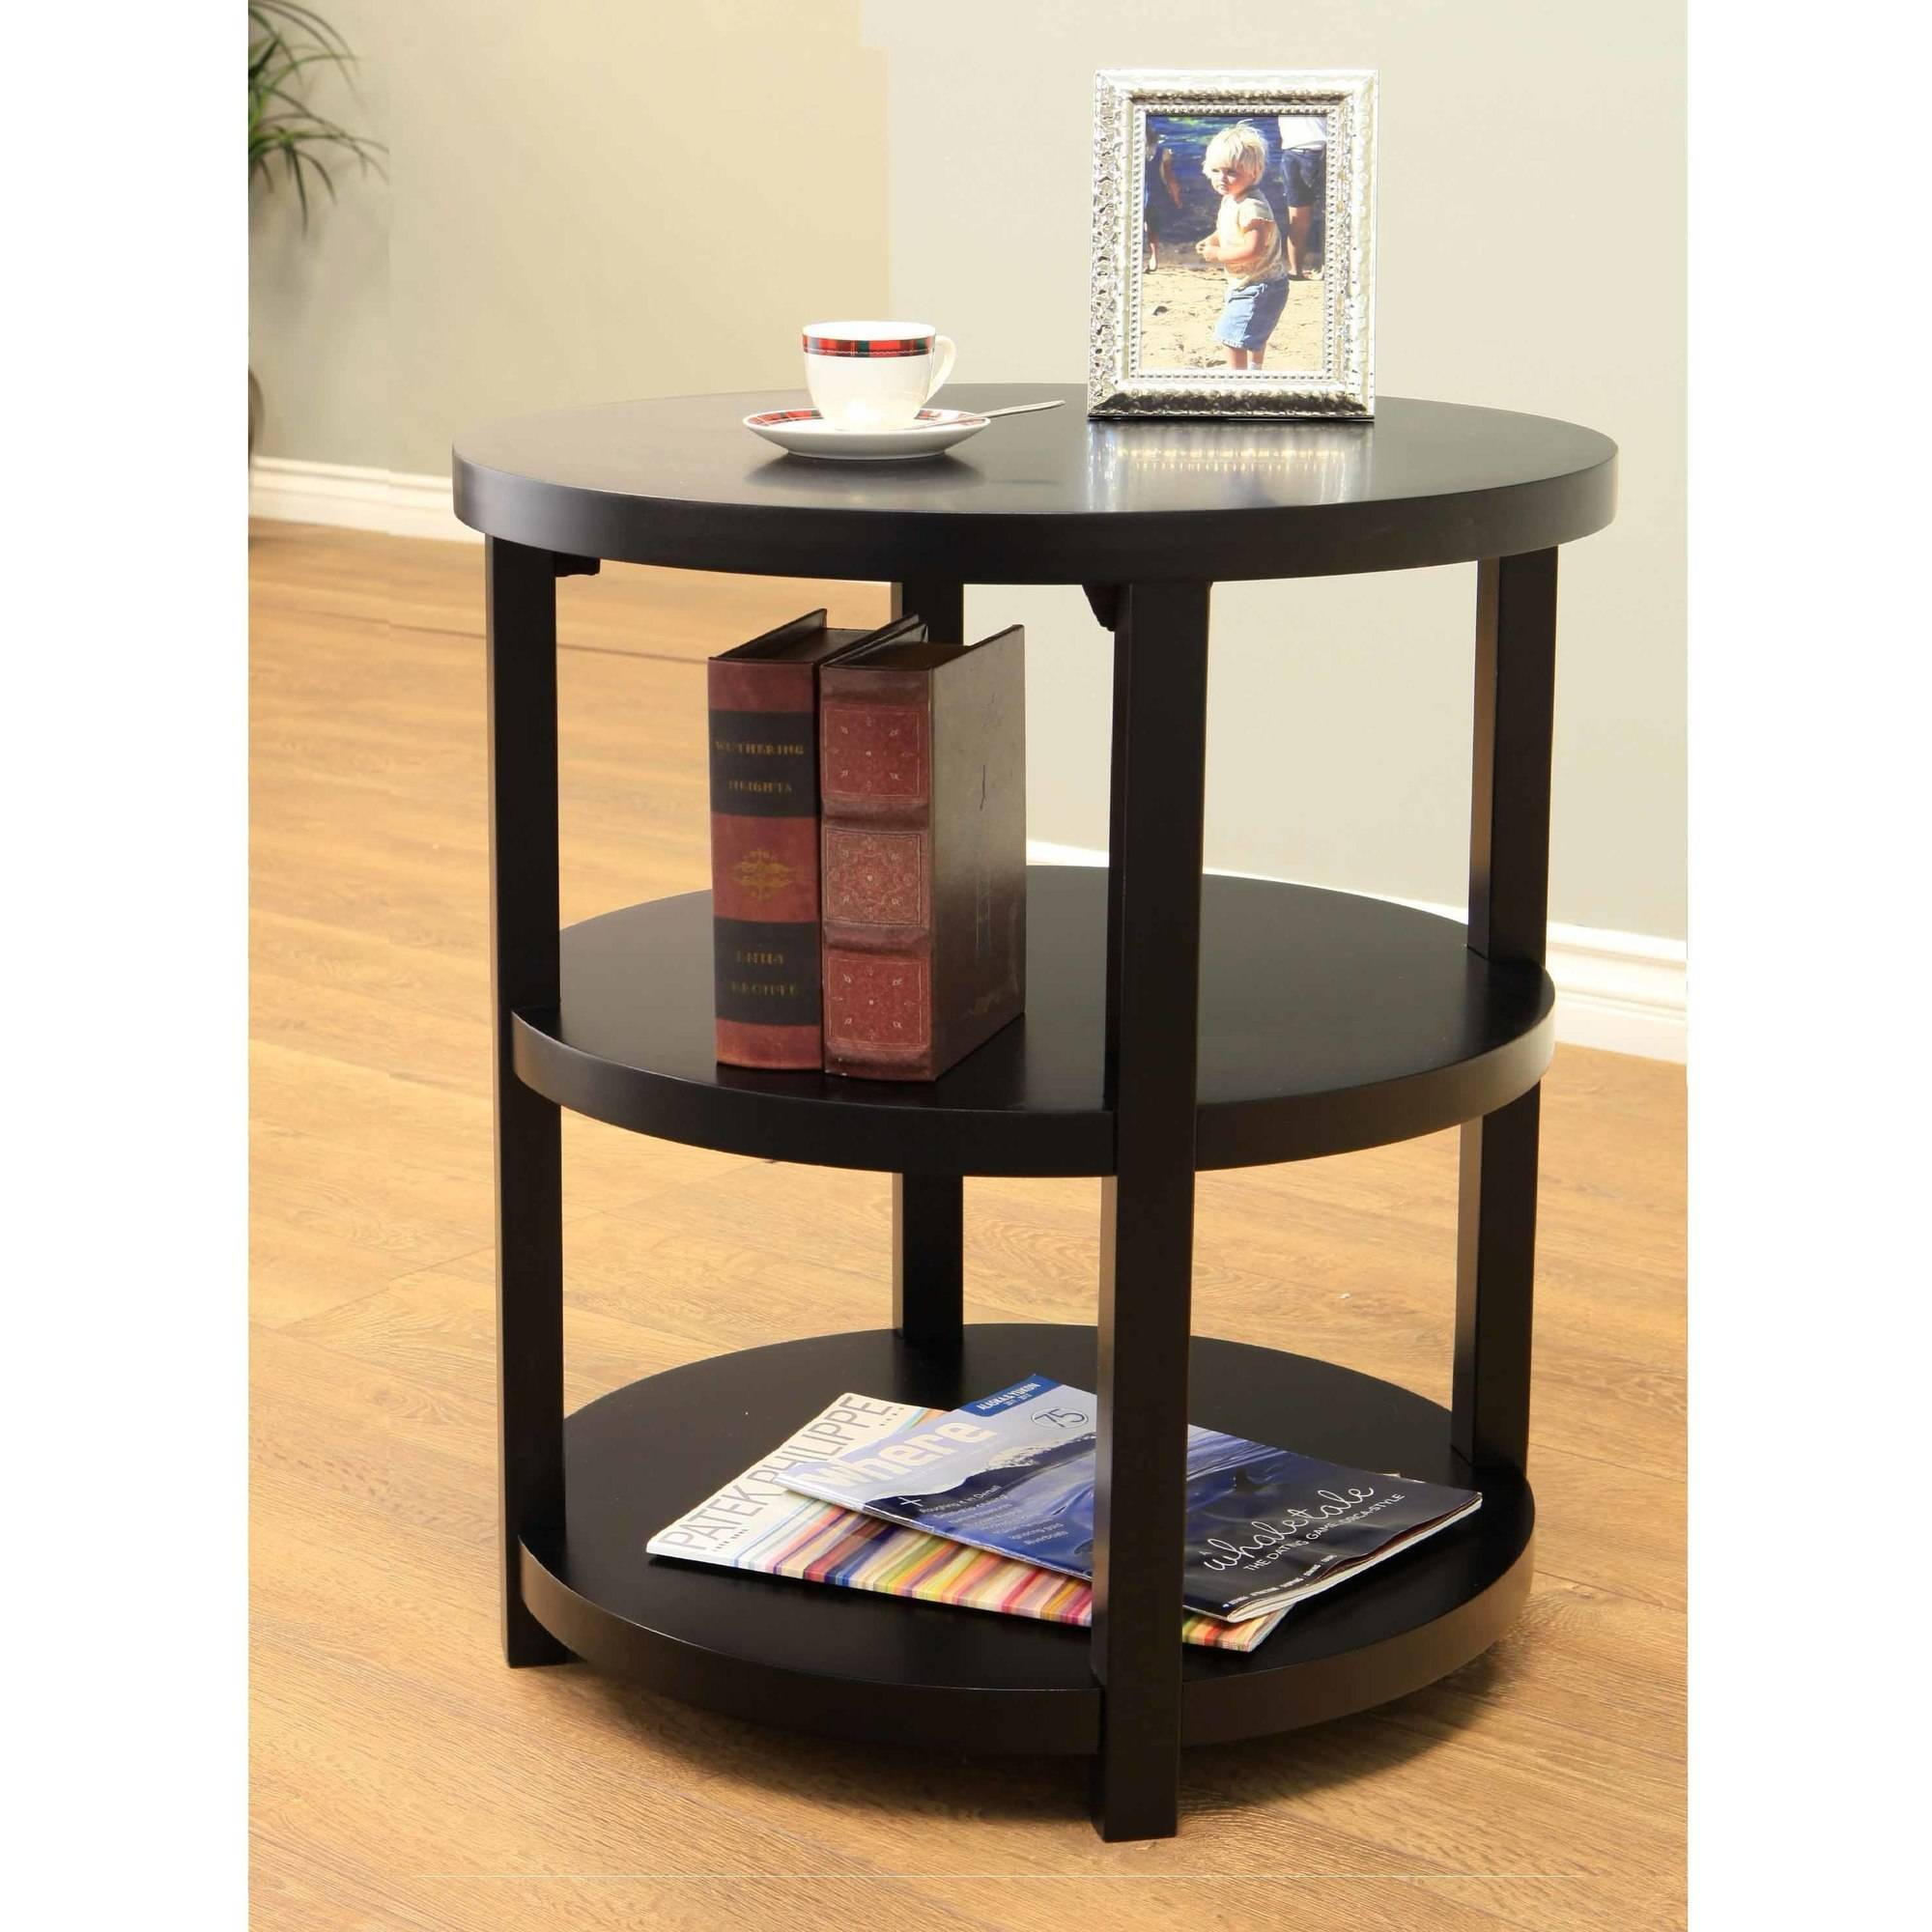 Home Craft Newbury 3-Tier Round Table